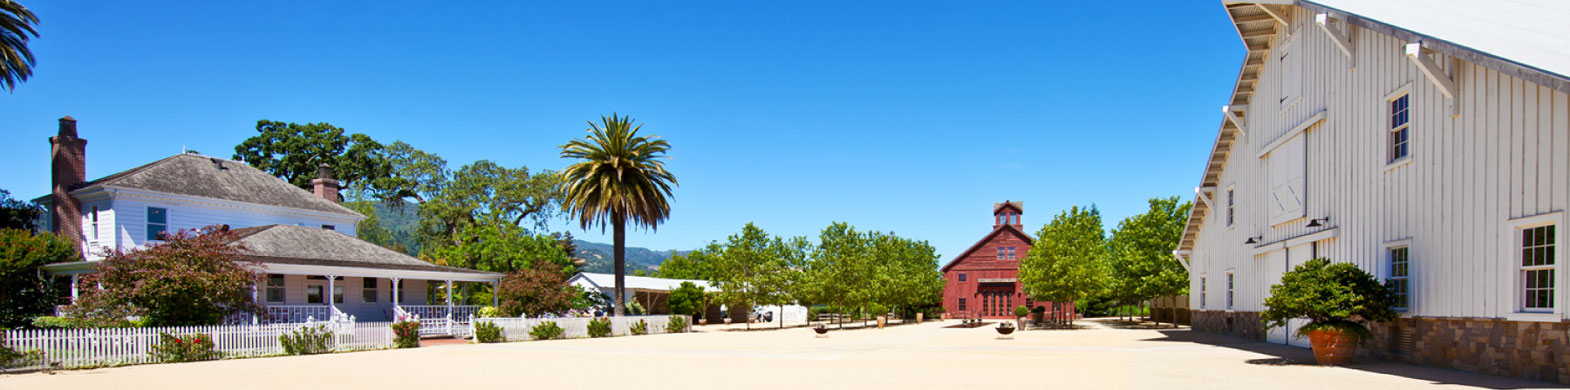 Napa Valley Wine Tours: Tours and Tastings